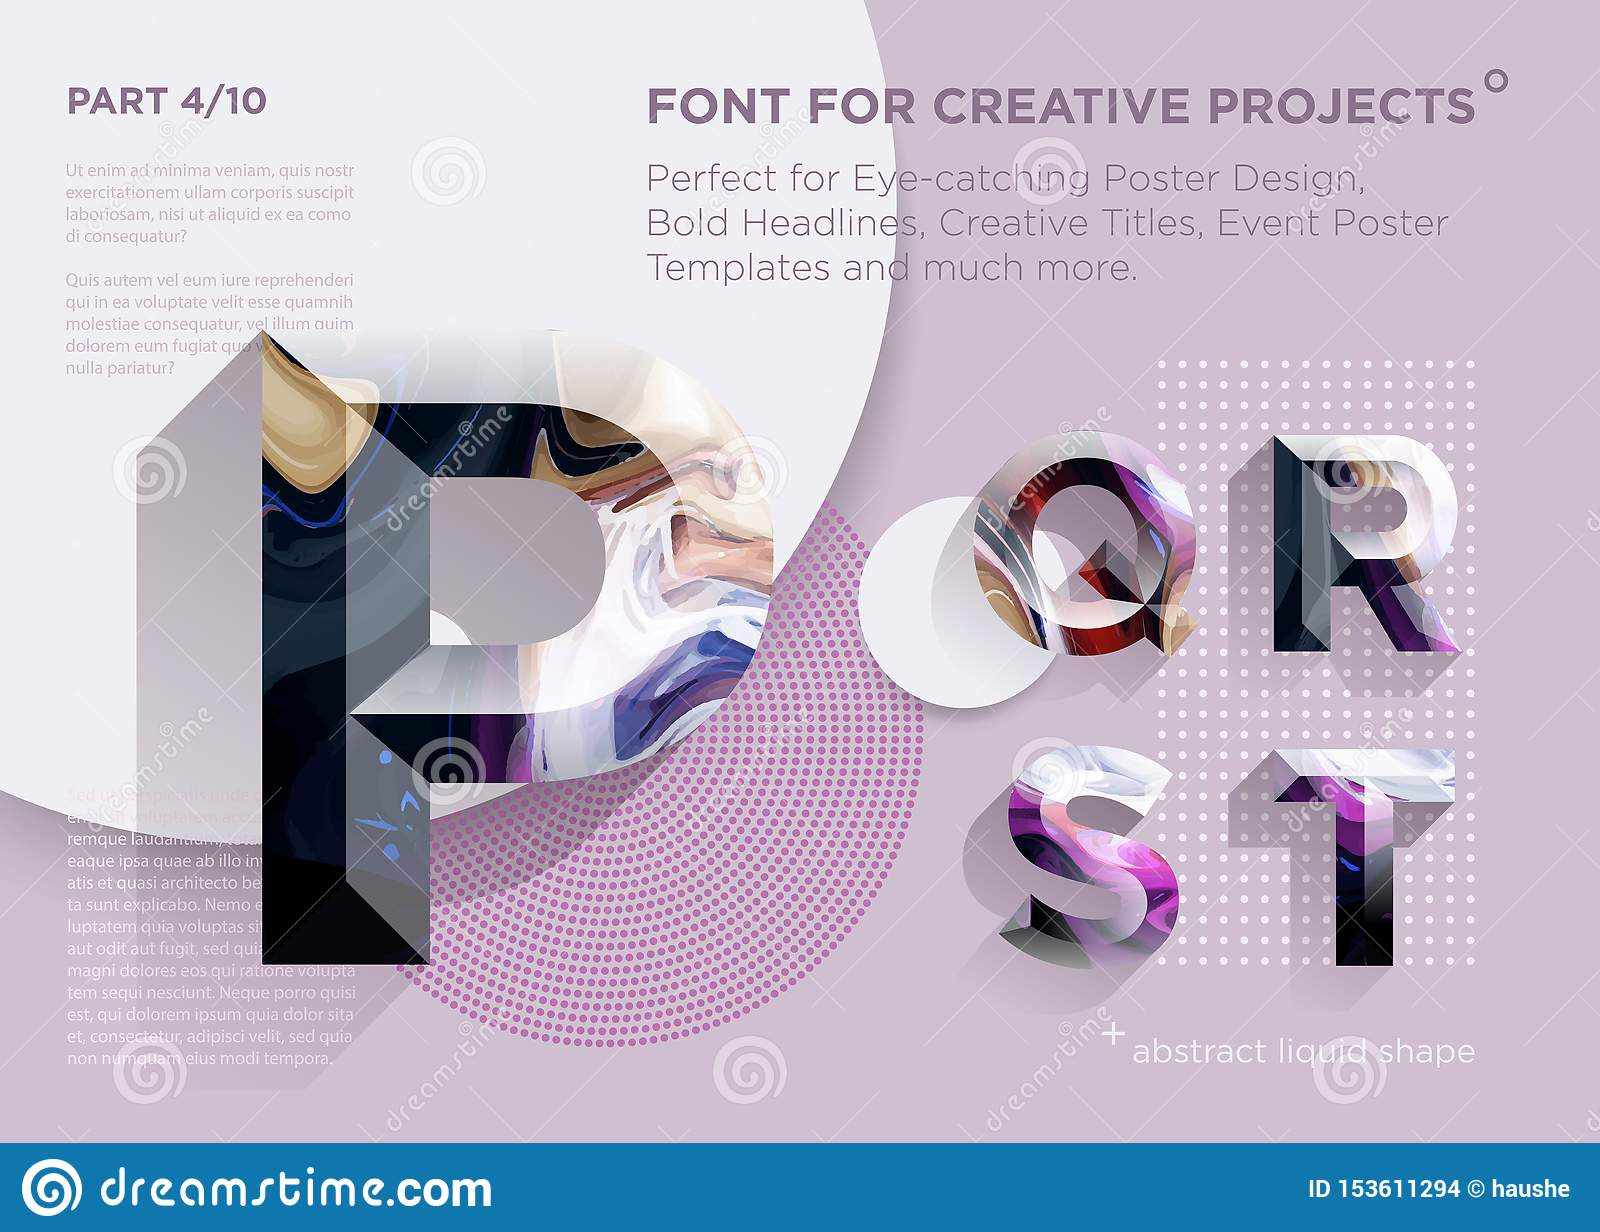 Simple Abstract Geometric Font. Perfect for Bold Headlines, Poster Designs, Creative Titles, Event Poster Template.